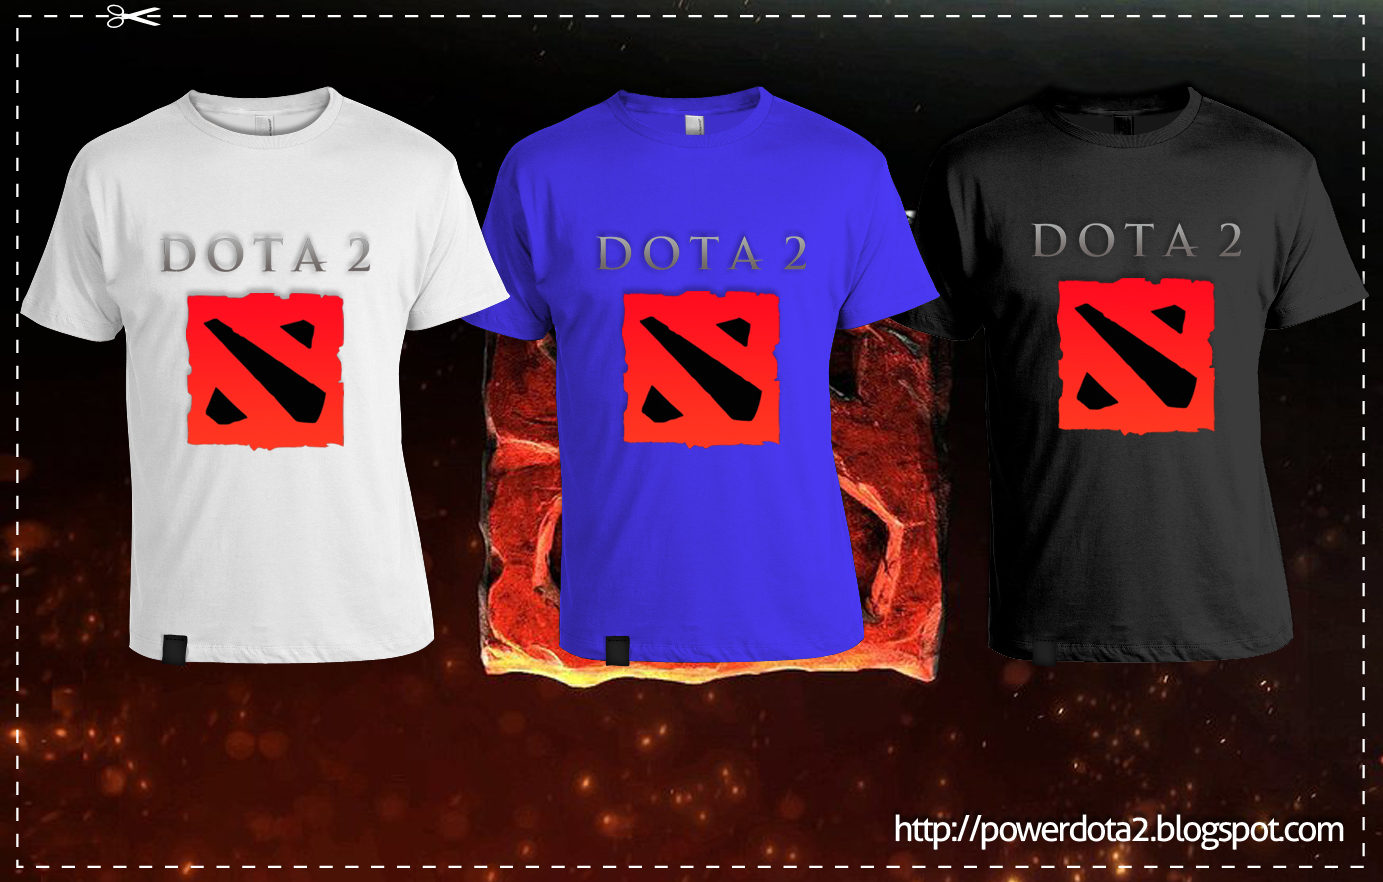 Of $ 2/b usd if you buy/b now you will get a dota/b 2/b t shirt des